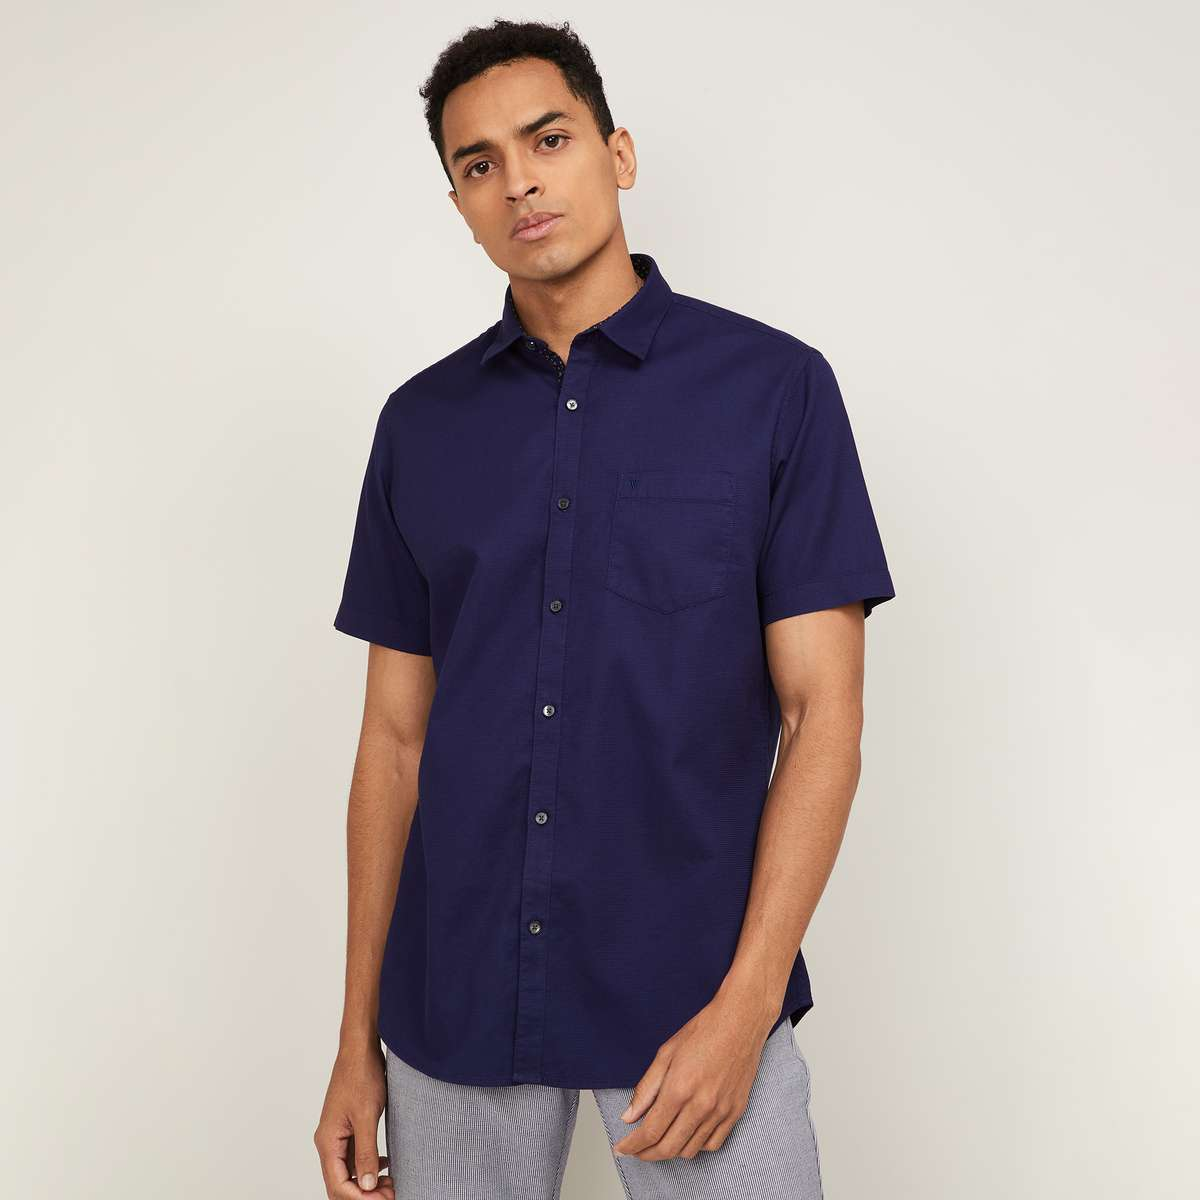 3.VH SPORTS Men Solid Slim Fit Casual Shirt